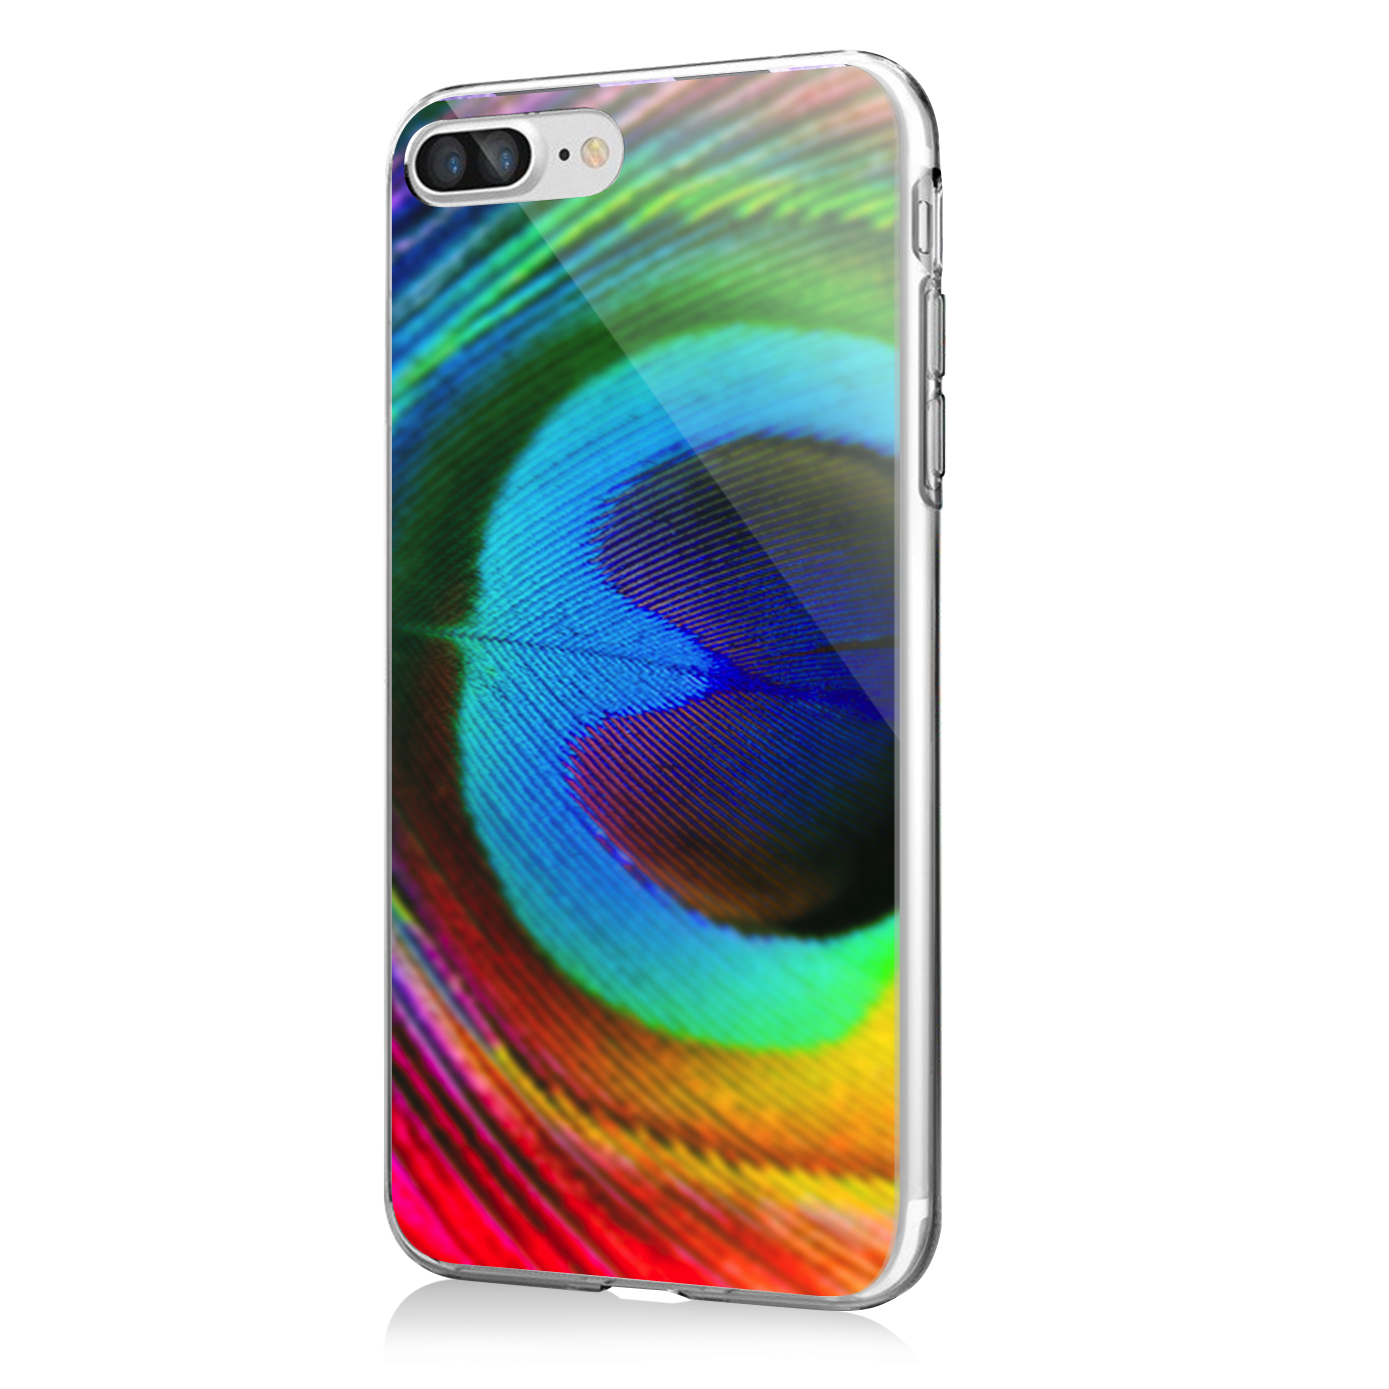 peacock feather iphone 7 plus iphone 8 plus carcasa transparenta silicon. Black Bedroom Furniture Sets. Home Design Ideas